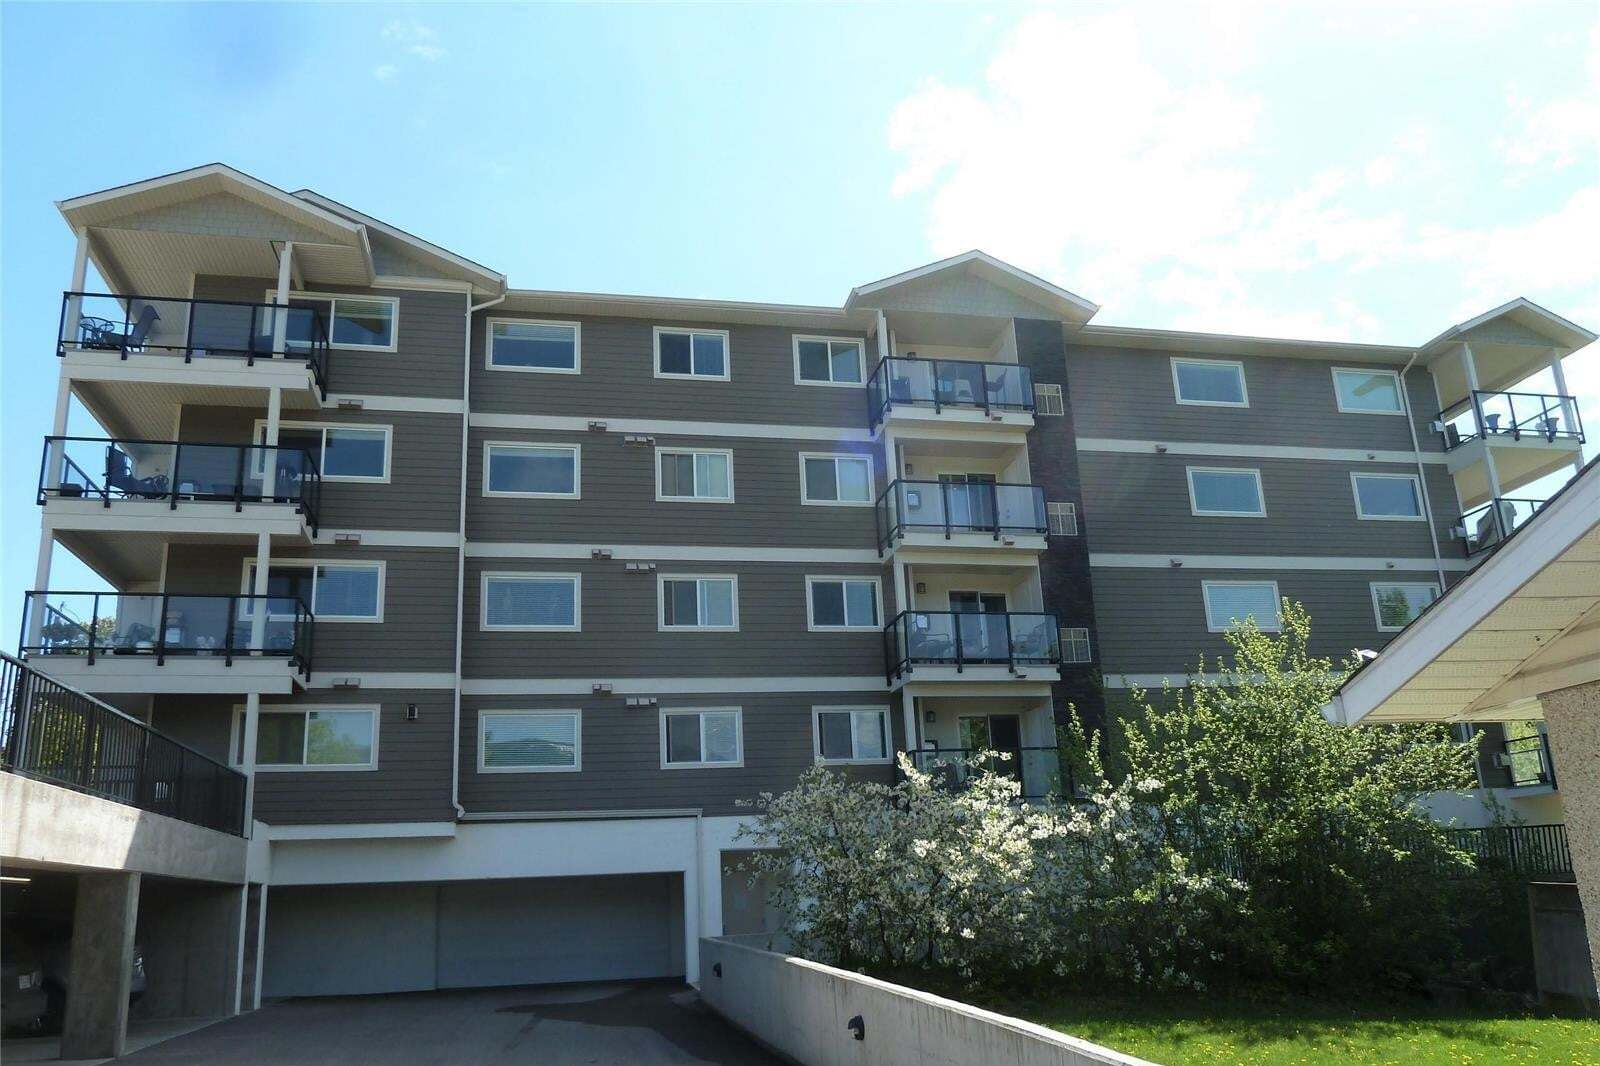 Condo for sale at 330 4 Ave Southeast Salmon Arm British Columbia - MLS: 10204779